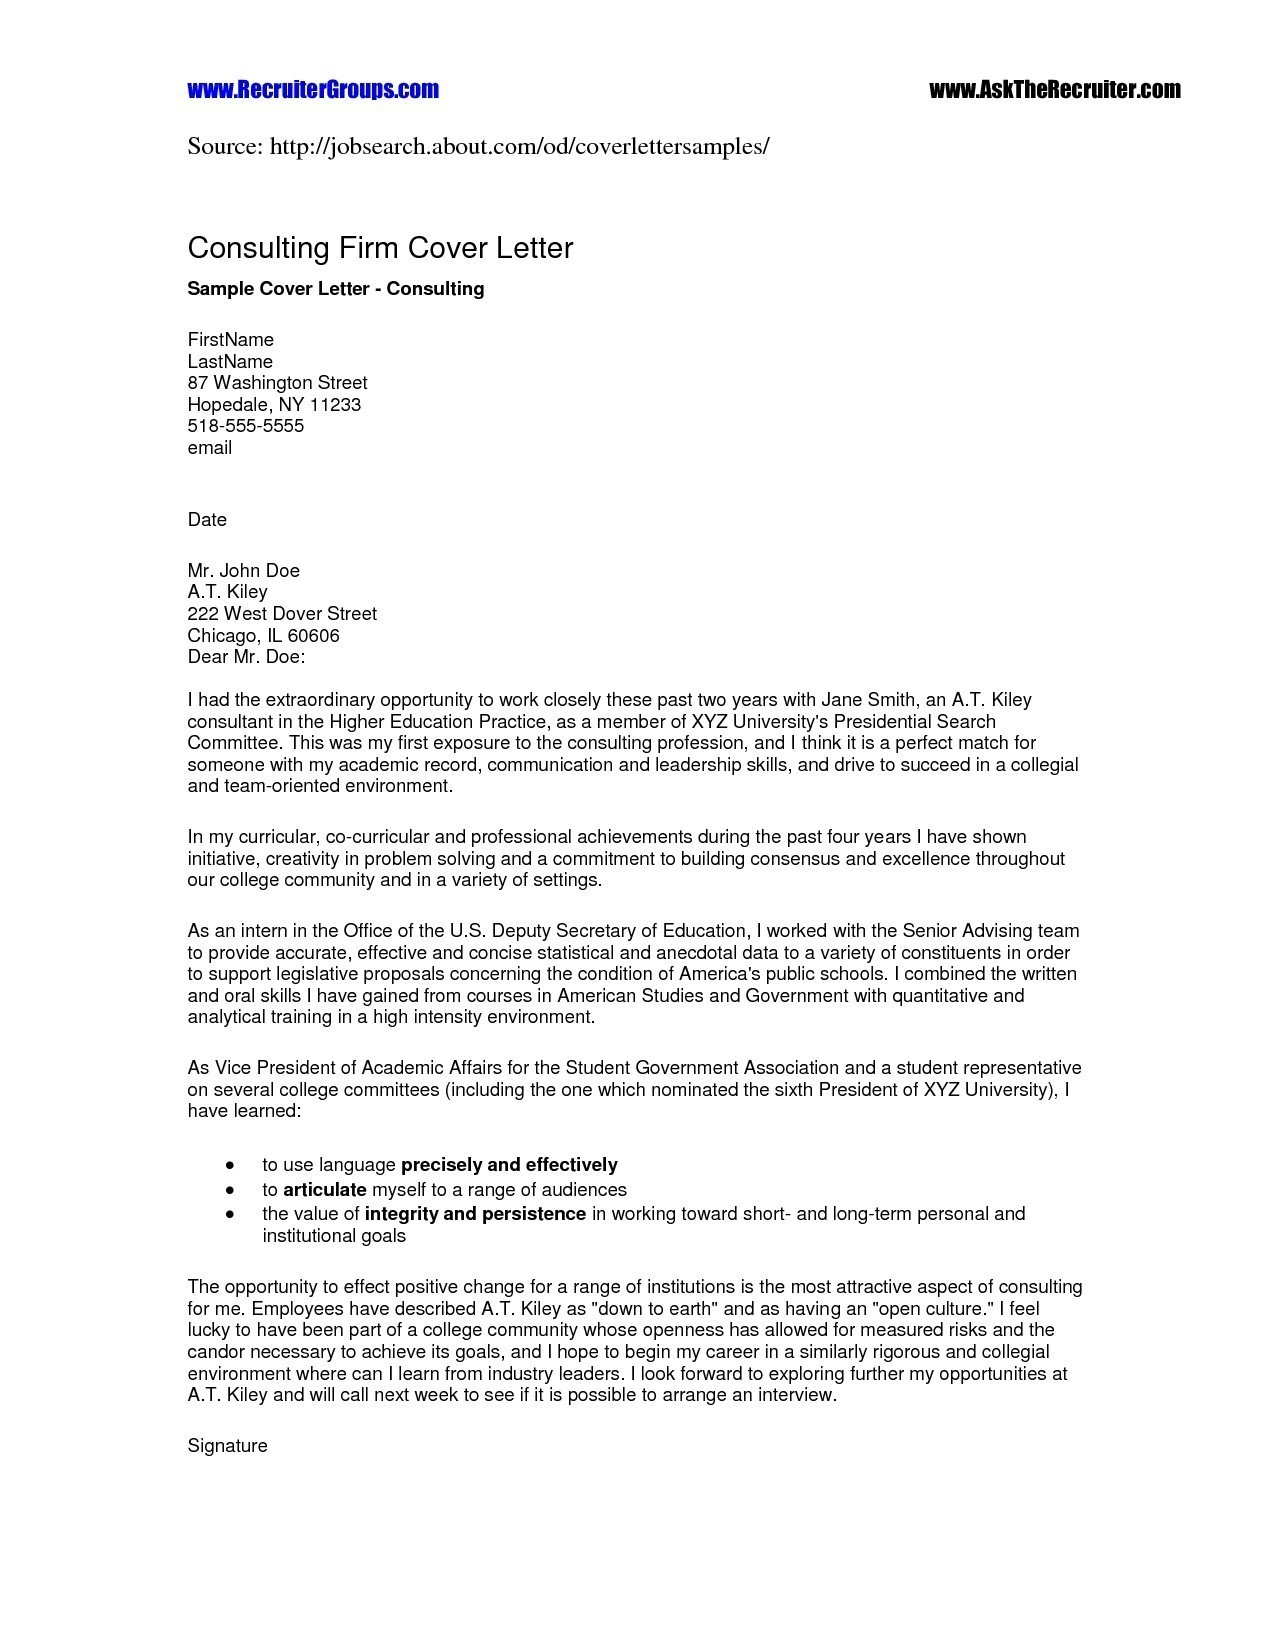 hr letter template example-Sample Job Verification Letter Refrence Job Application Letter Format Template Copy Cover Letter Template Hr 19-c